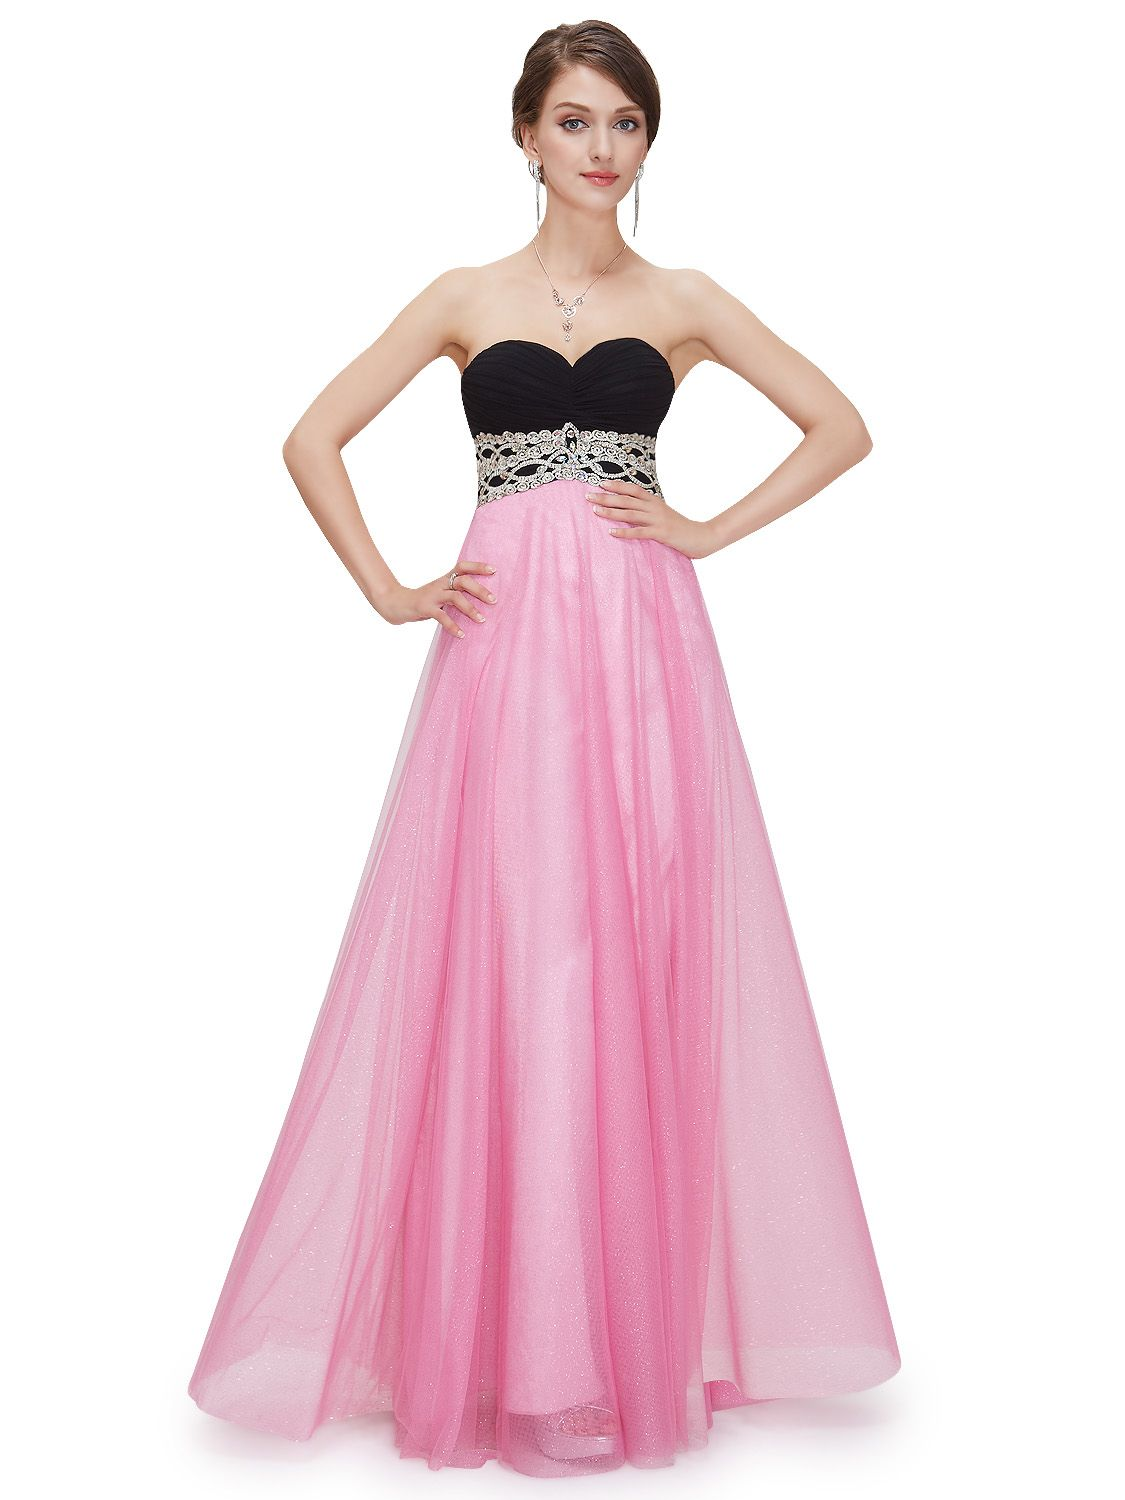 Strapless formal dress with a black sweetheart bodice